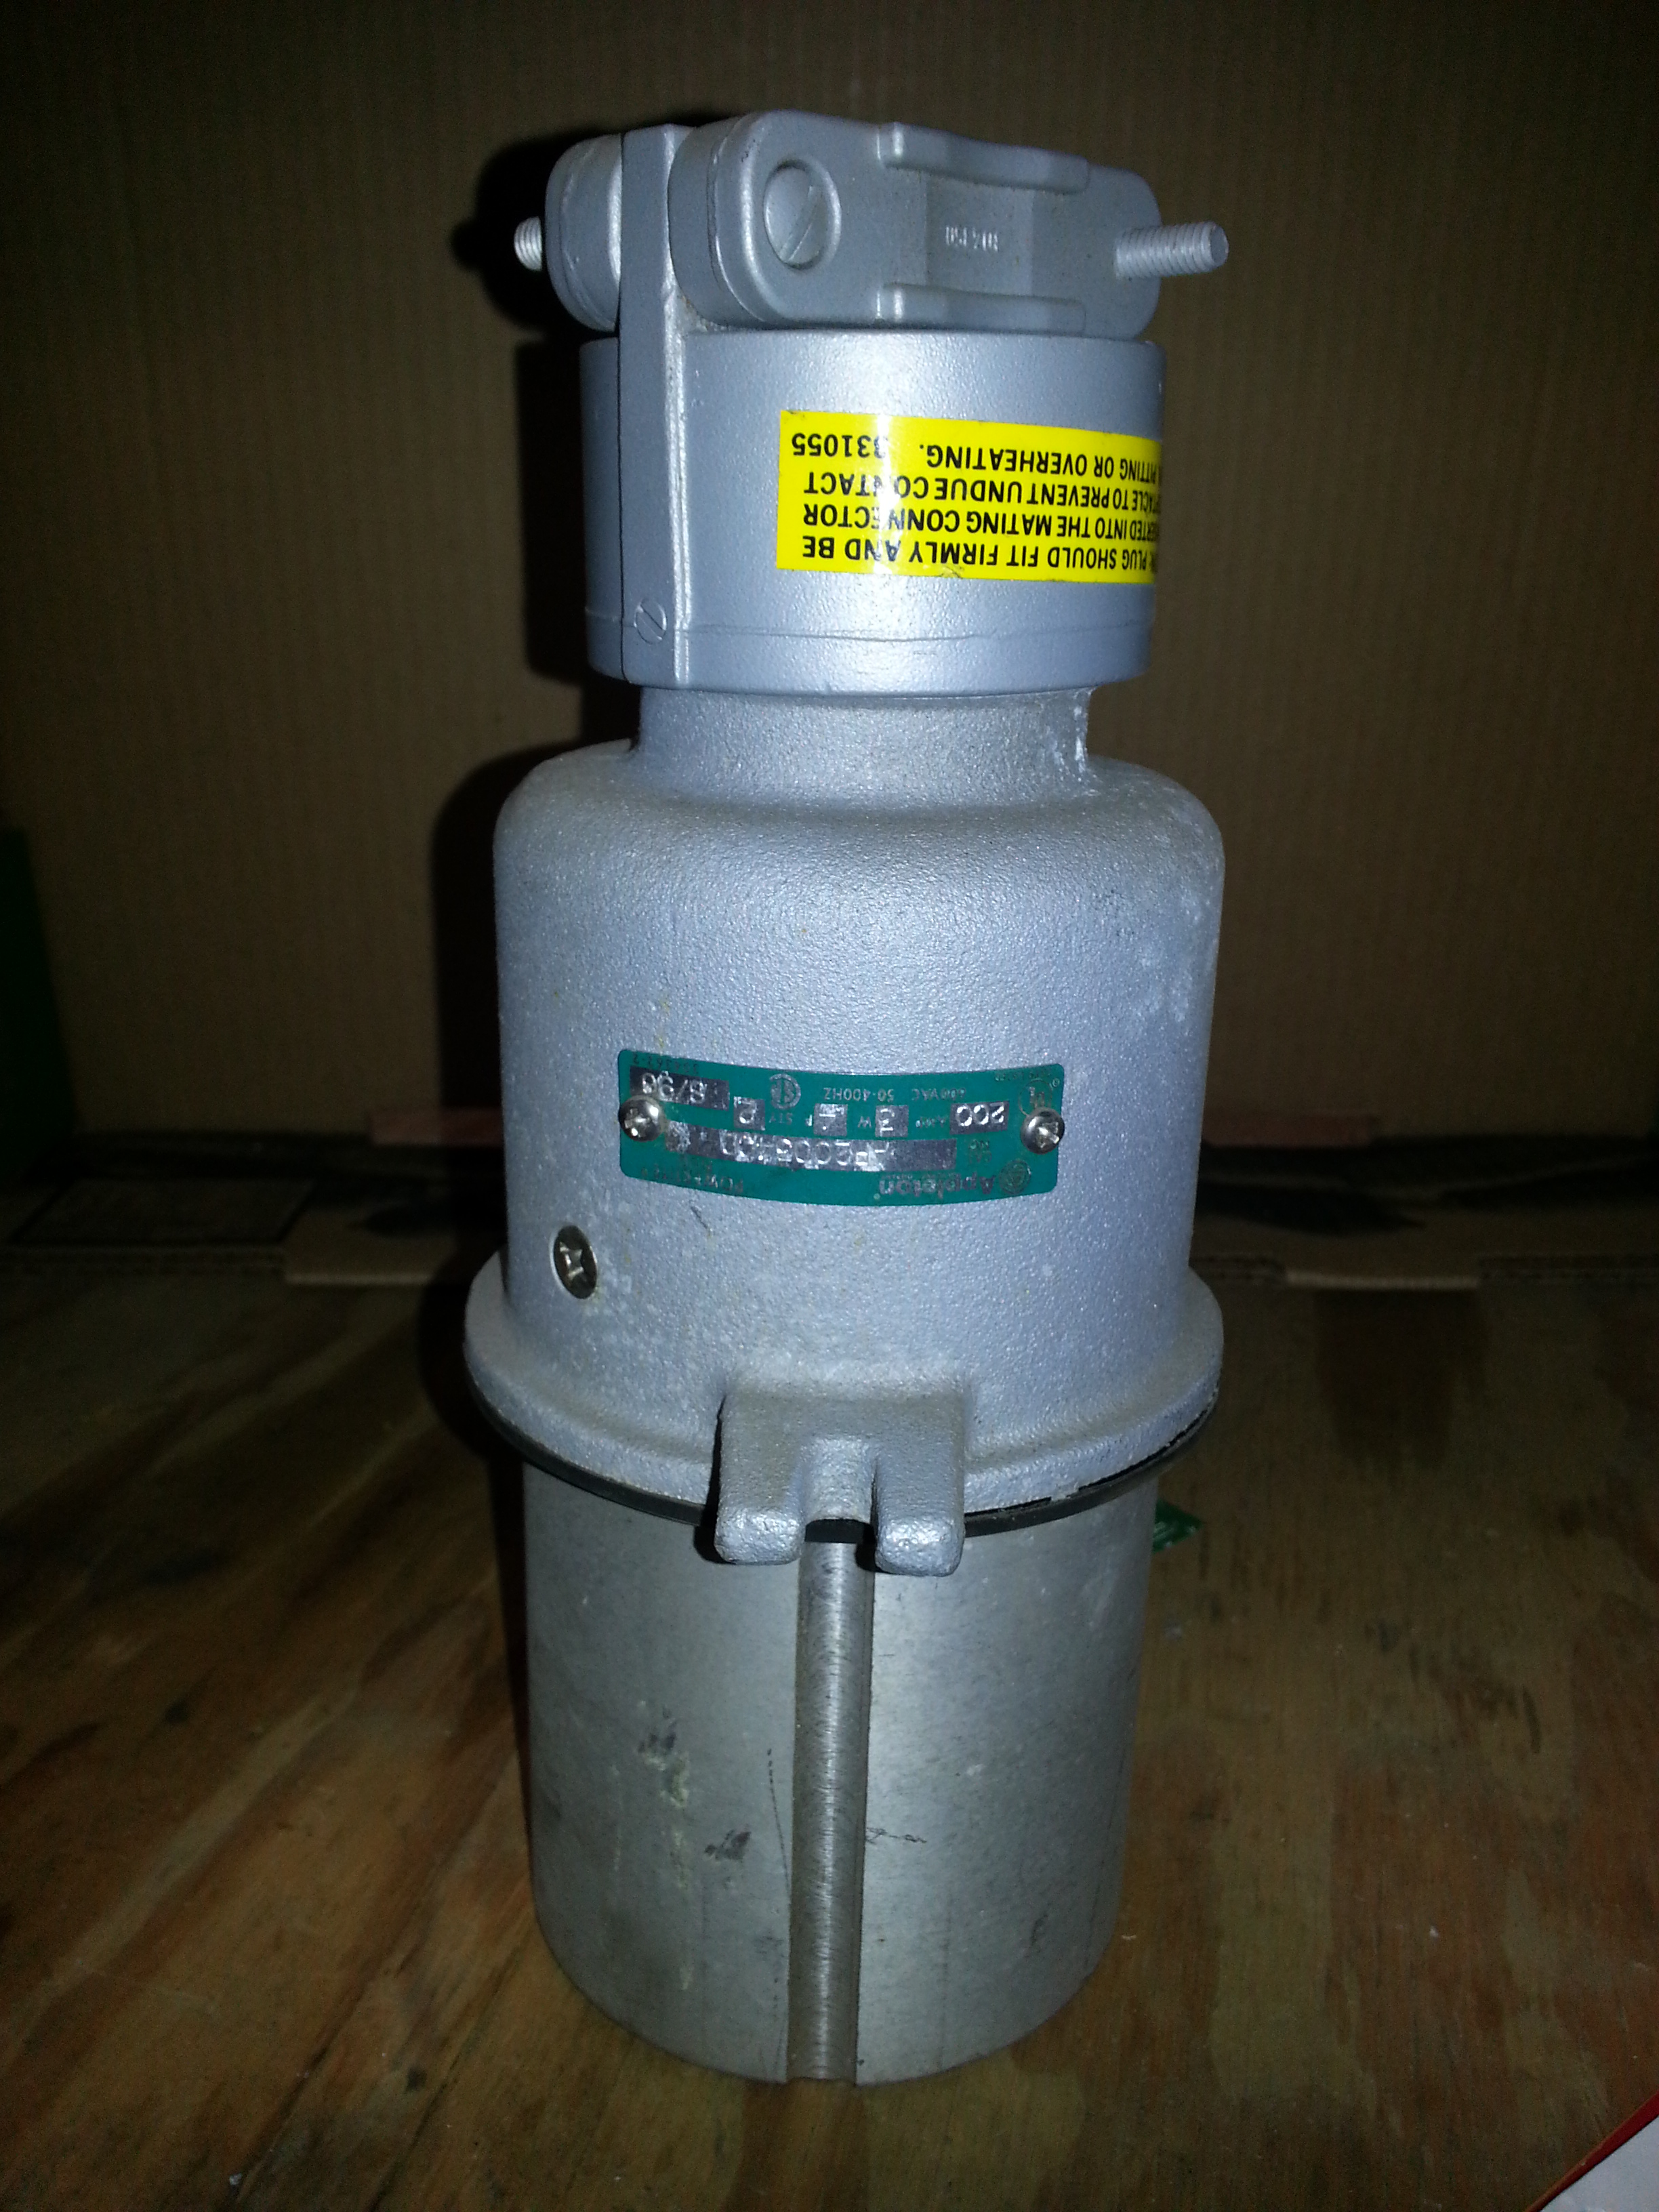 13574824 likewise 570733 in addition 291651581657 in addition 280806826654 as well 120 Vac Receptacle. on appleton electric plugs